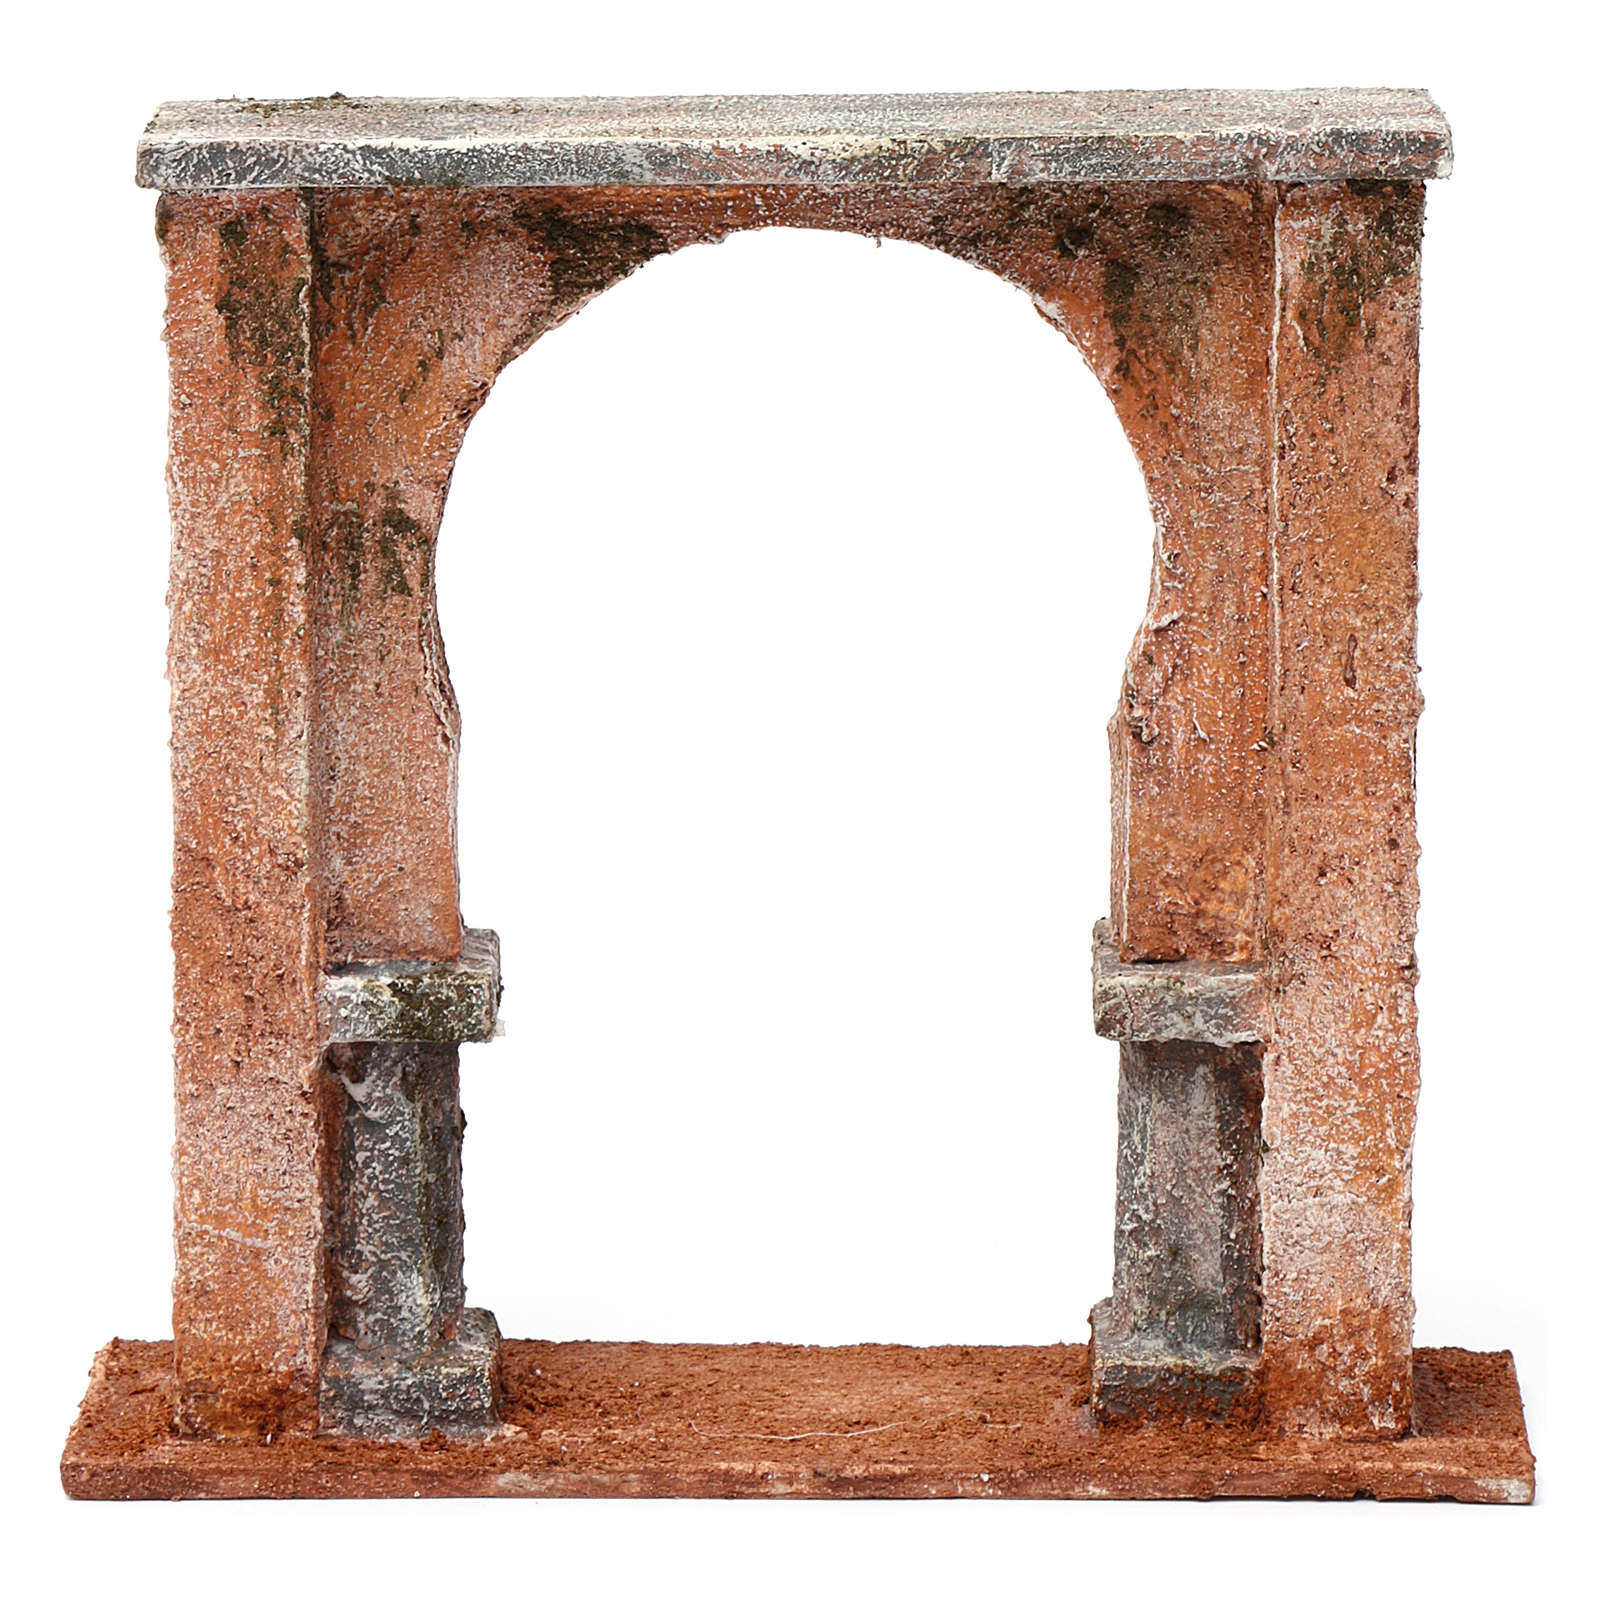 Wall with arched window for 12 cm nativity scene, Palestine style 4